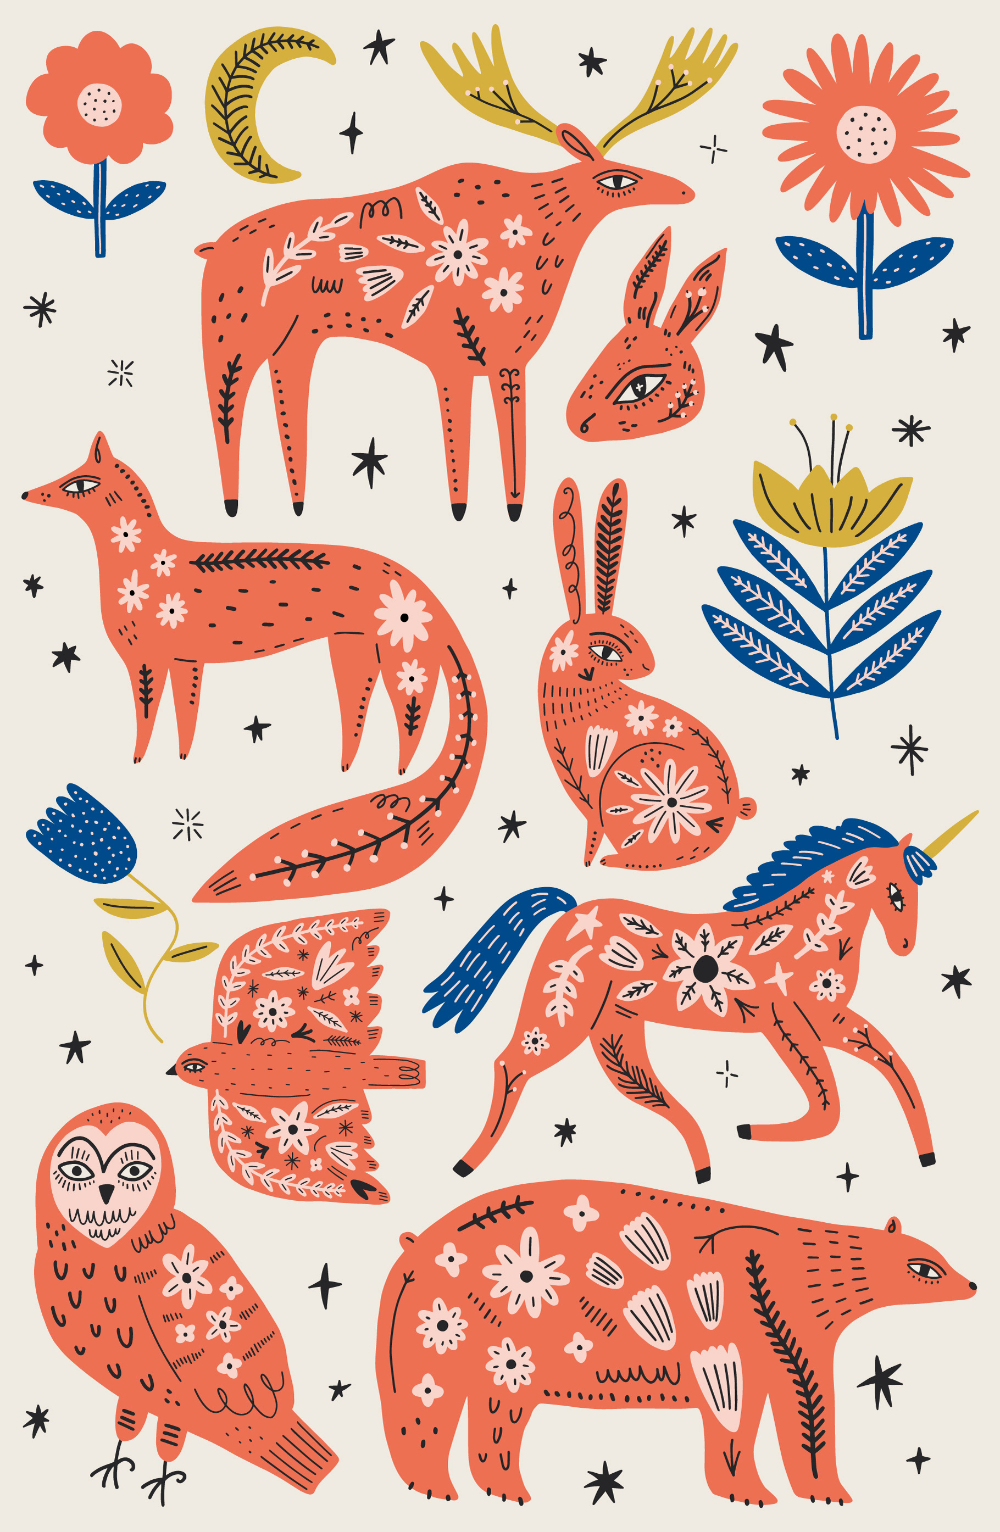 Nordic Folk Art Projects Photos Videos Logos Illustrations And Branding On Behance In 2020 Scandinavian Folk Art Scandinavian Art Pattern Art